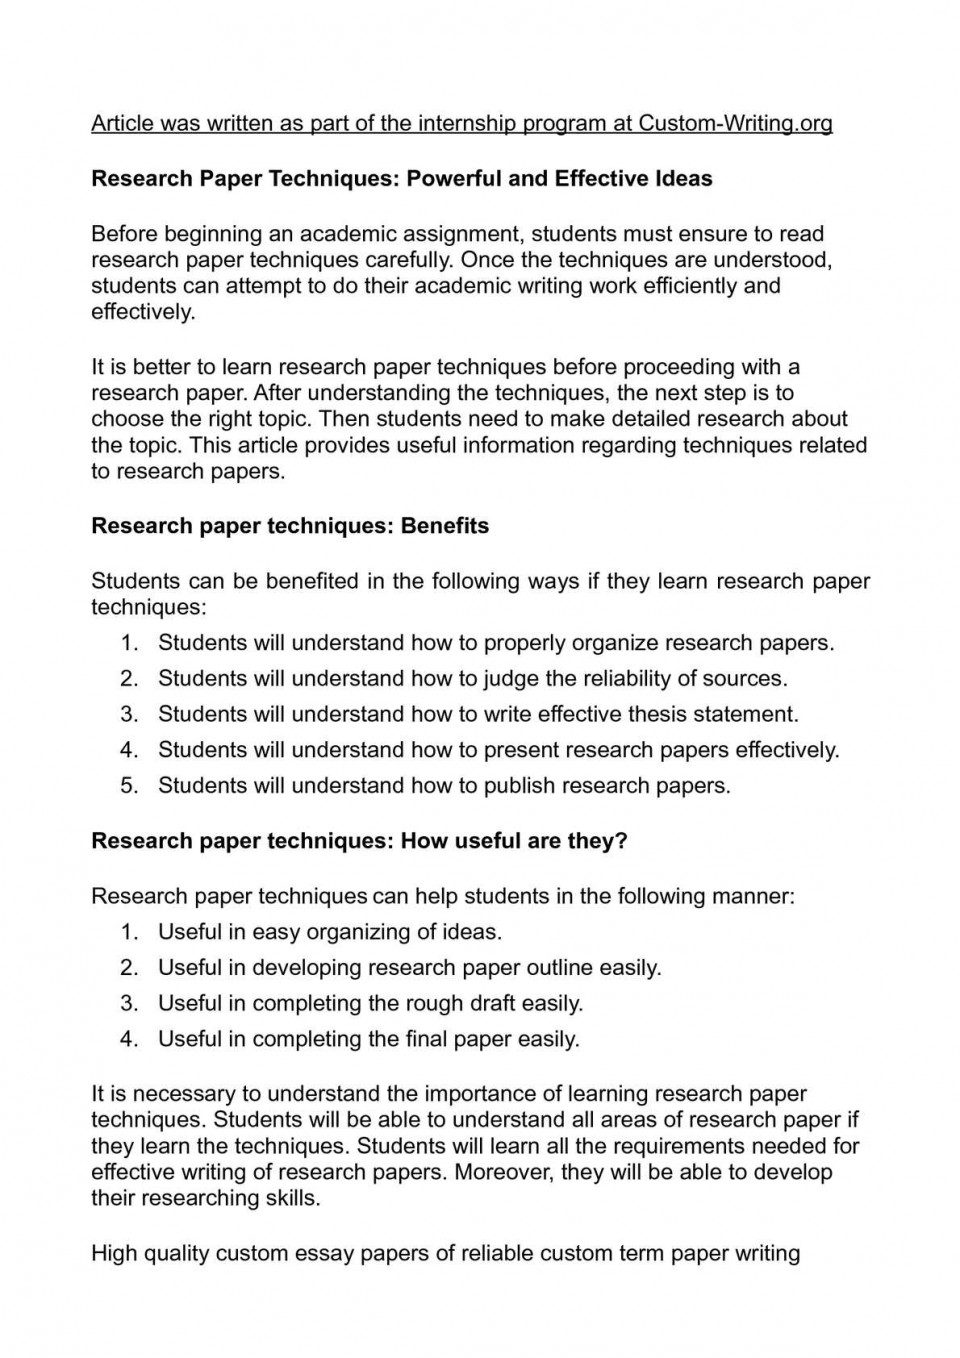 003 Ideas For Researchs P1 Archaicawful Research Papers High School Paper On Technology Healthcare 960